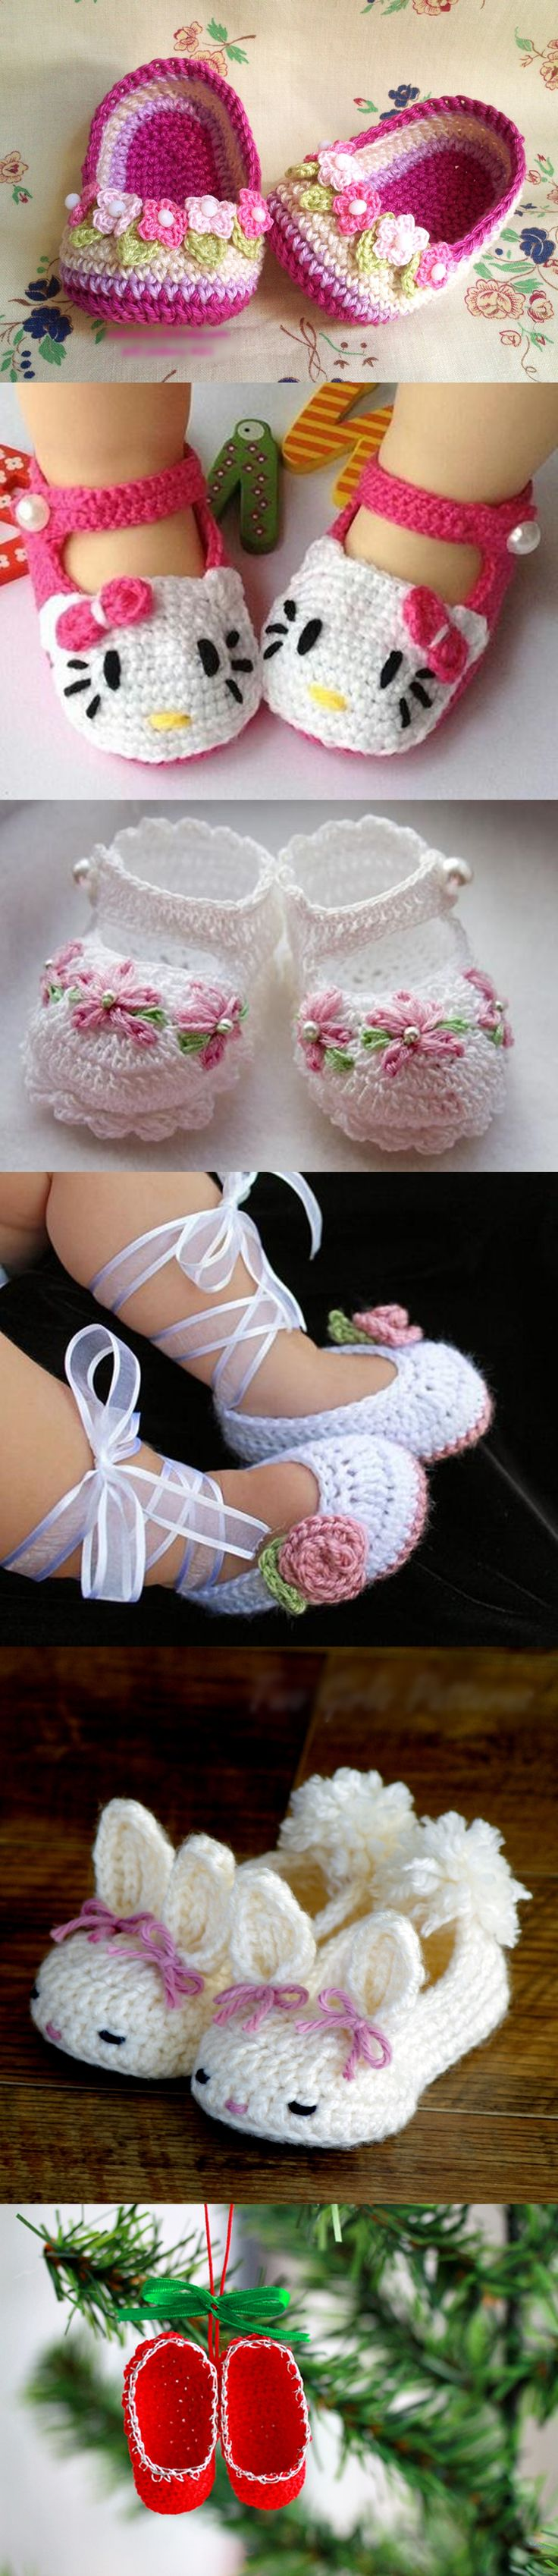 crochet baby slippers M1                                                                                                                                                      More